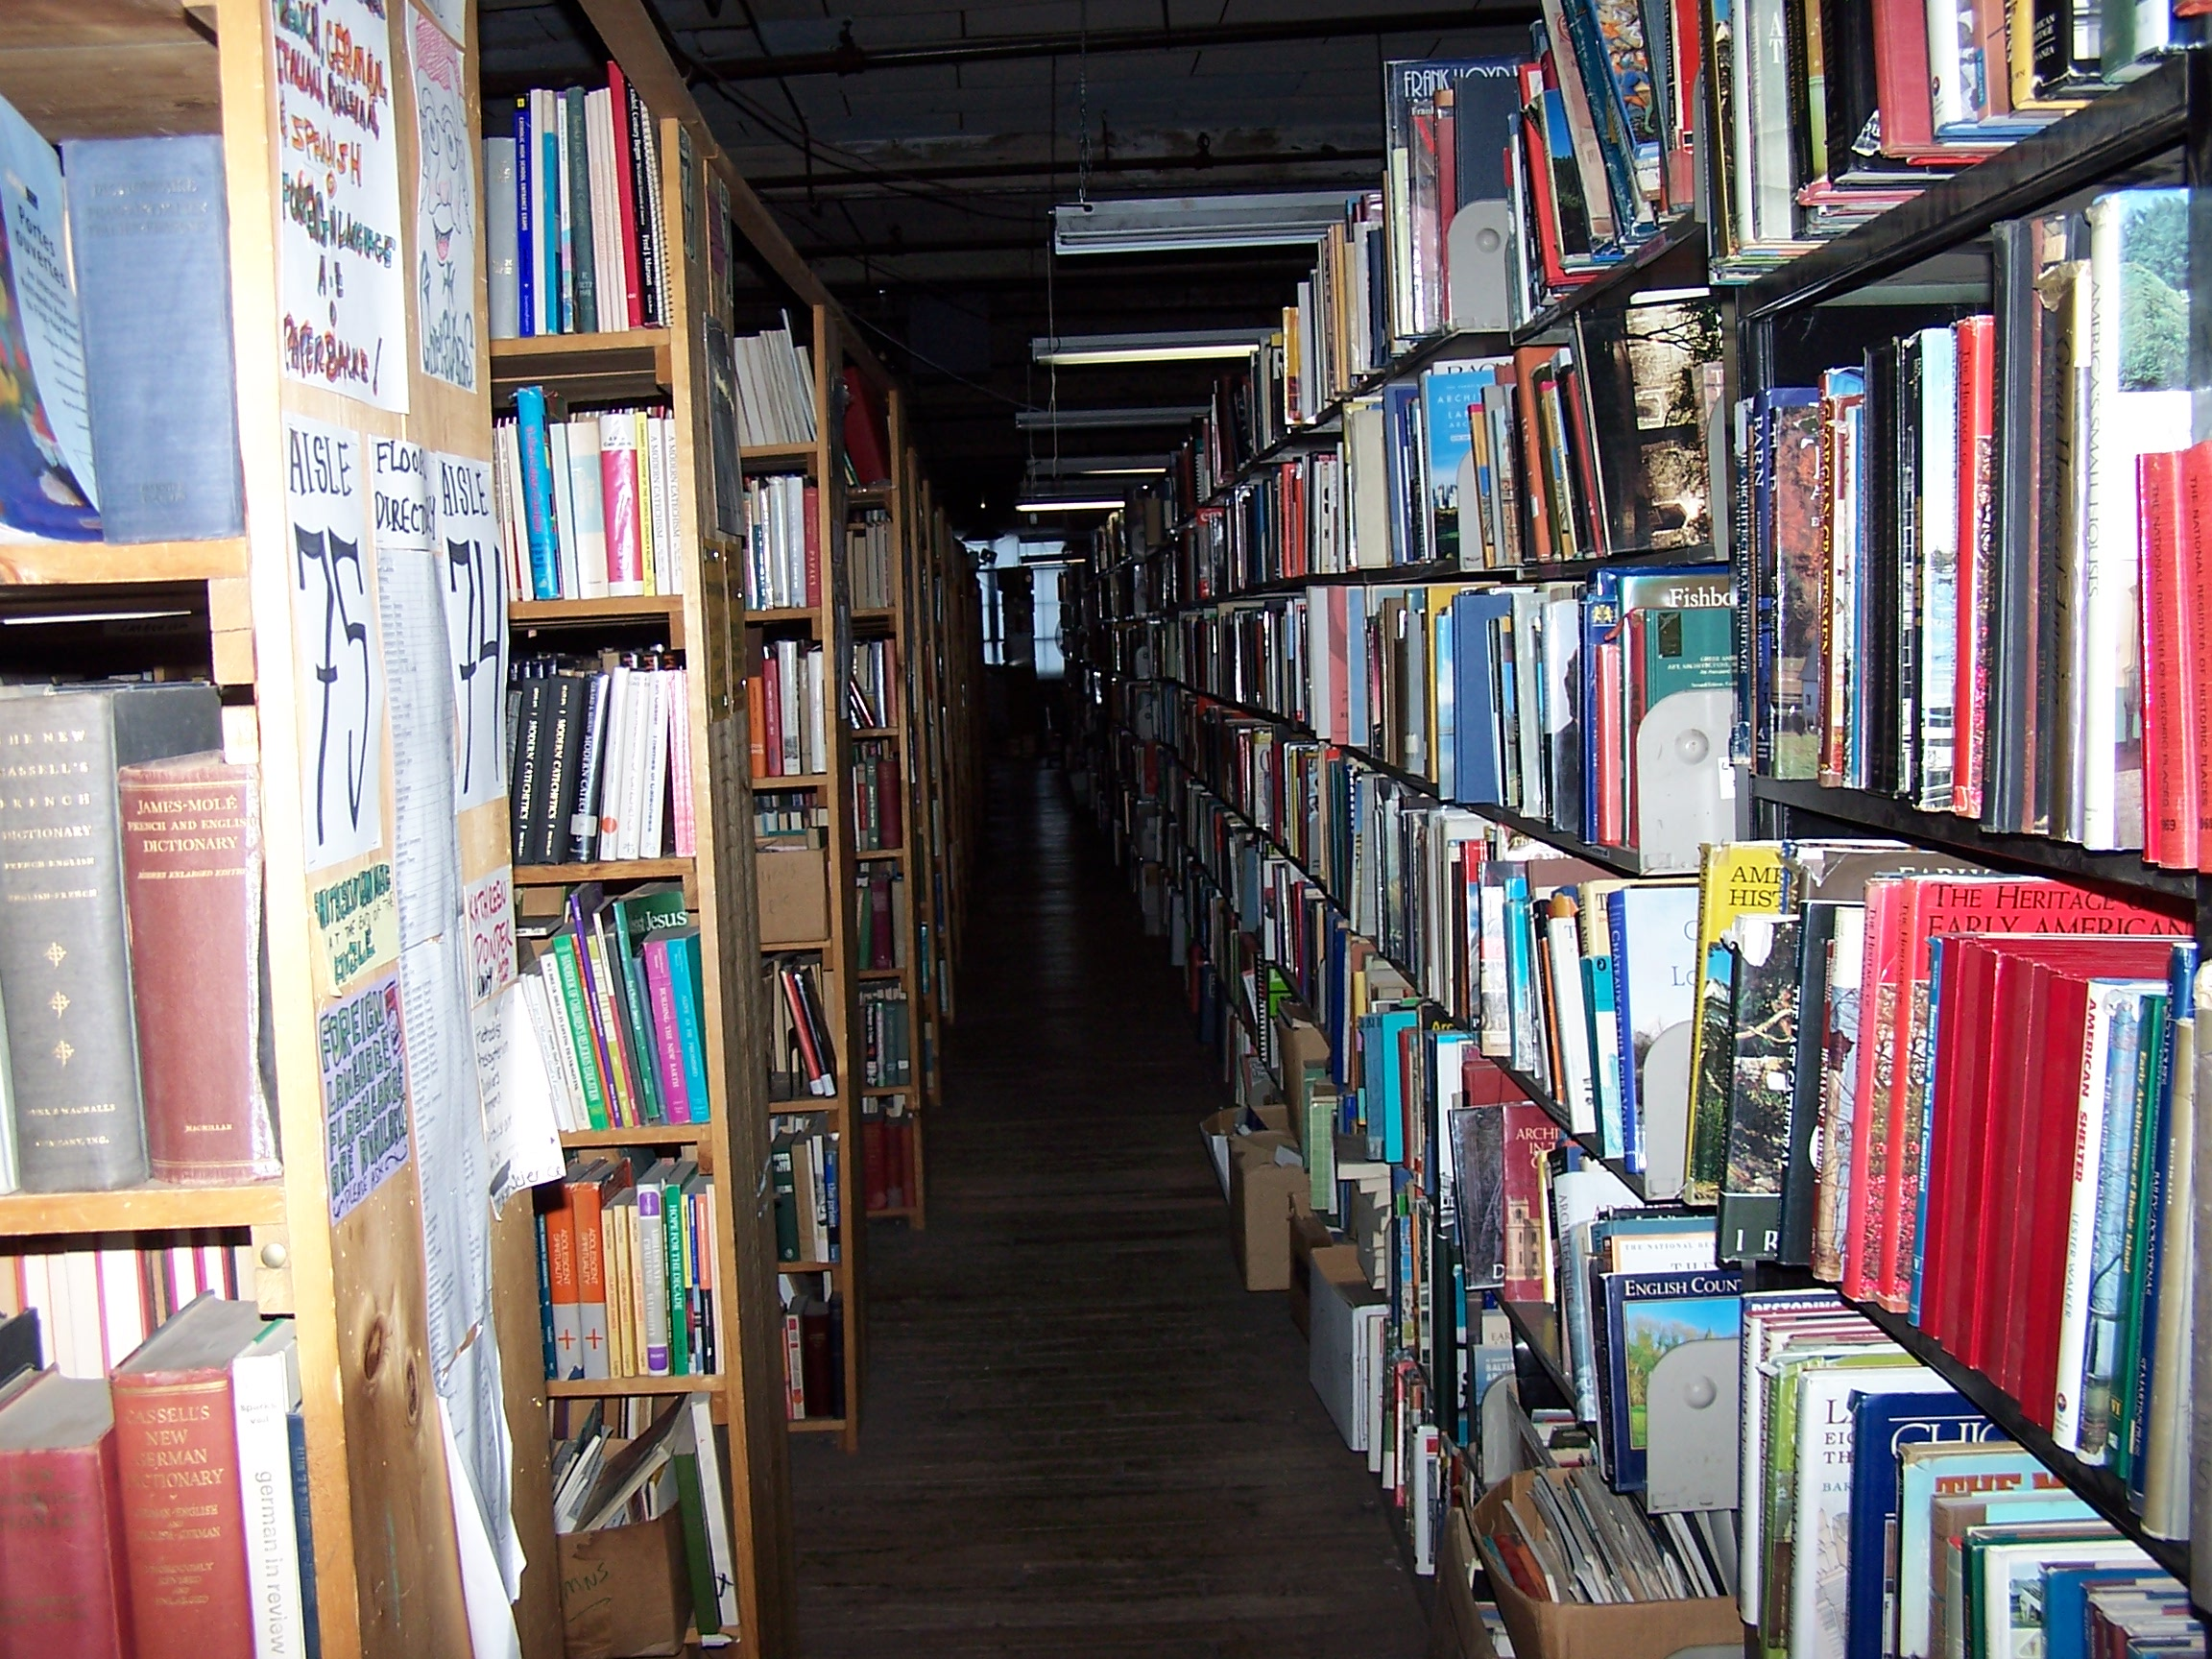 Books as far as the eye can see